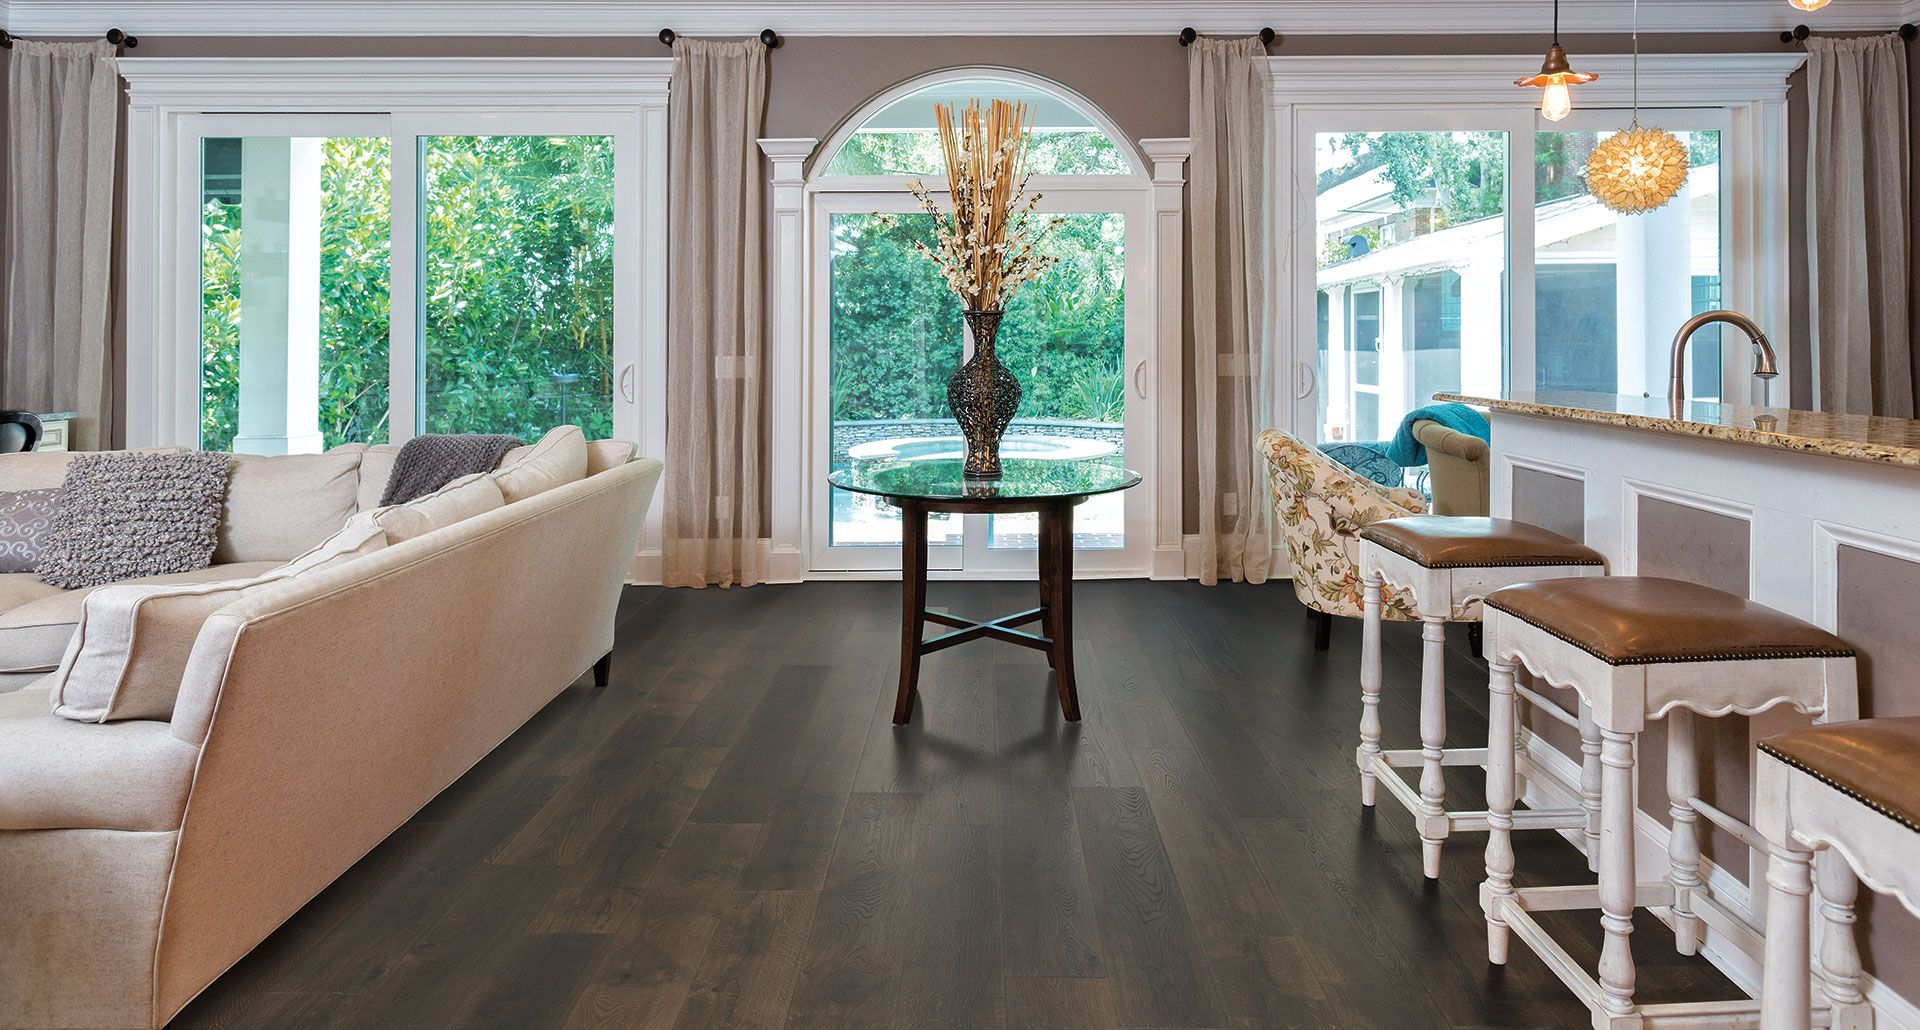 Gatehouse Oak Laminate Flooring From Pergo Adds Amazing Character To Any Room Exquisite Knots And Graining Give These Floors A Truly Custom Look